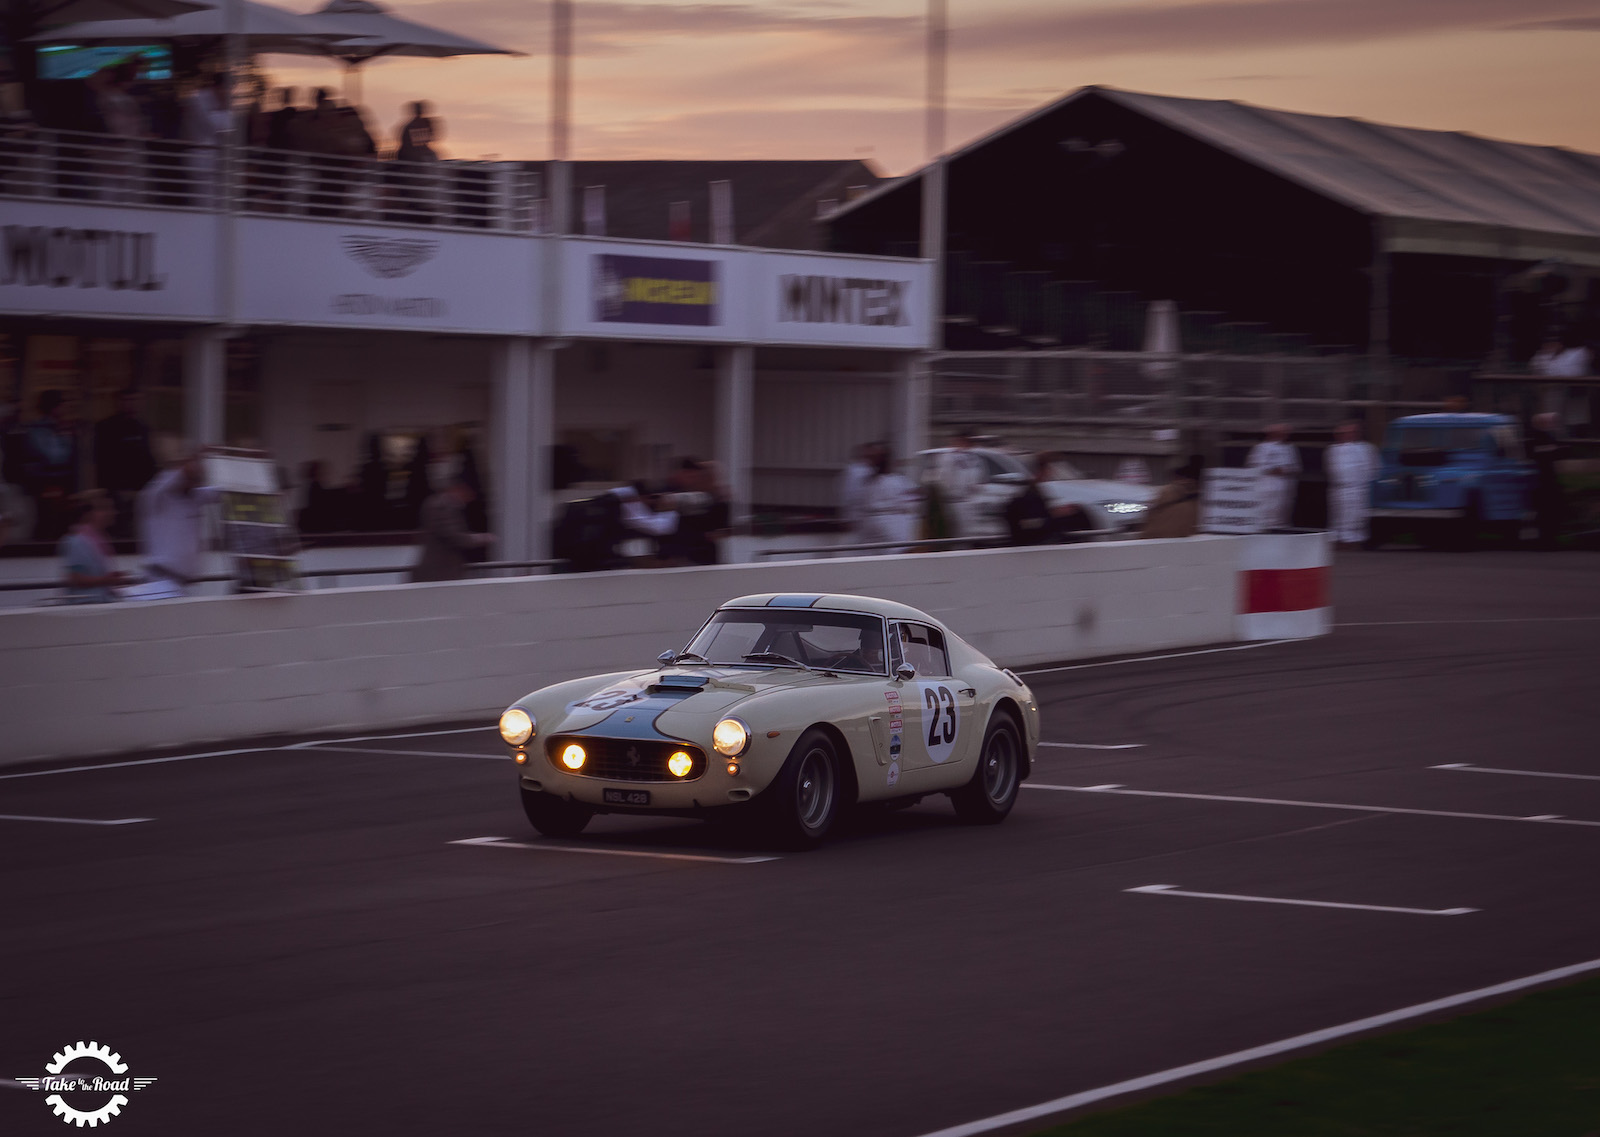 Counting down to the Goodwood Revival 2021